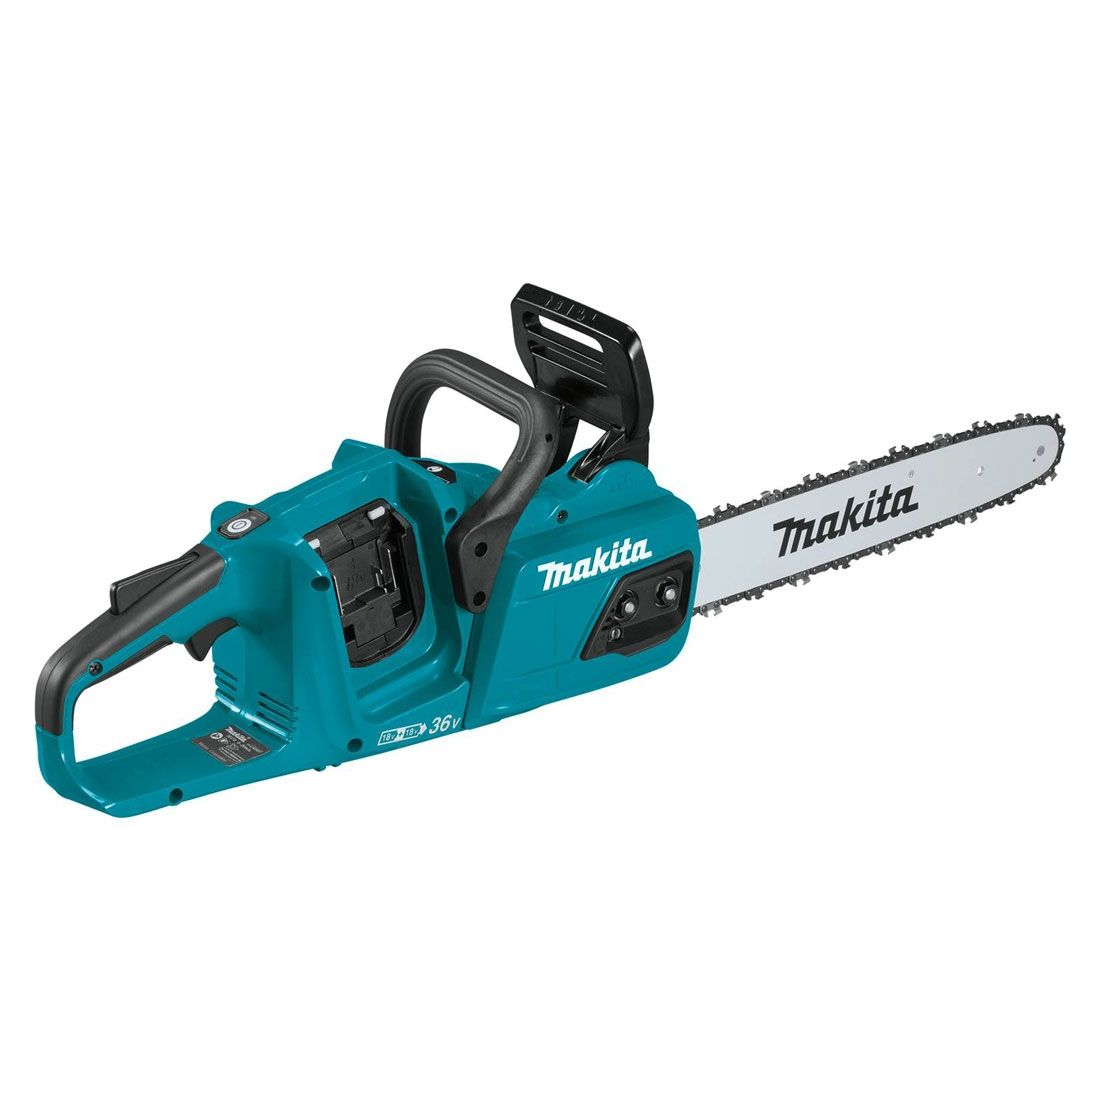 Makita 18v Twin Brushless Chainsaw 14 Body MAKDUC355Z | Eliminating the need to mix fuel and 2-stroke oil the saw is also quiet and starts at the press of a button. | toolforce.ie